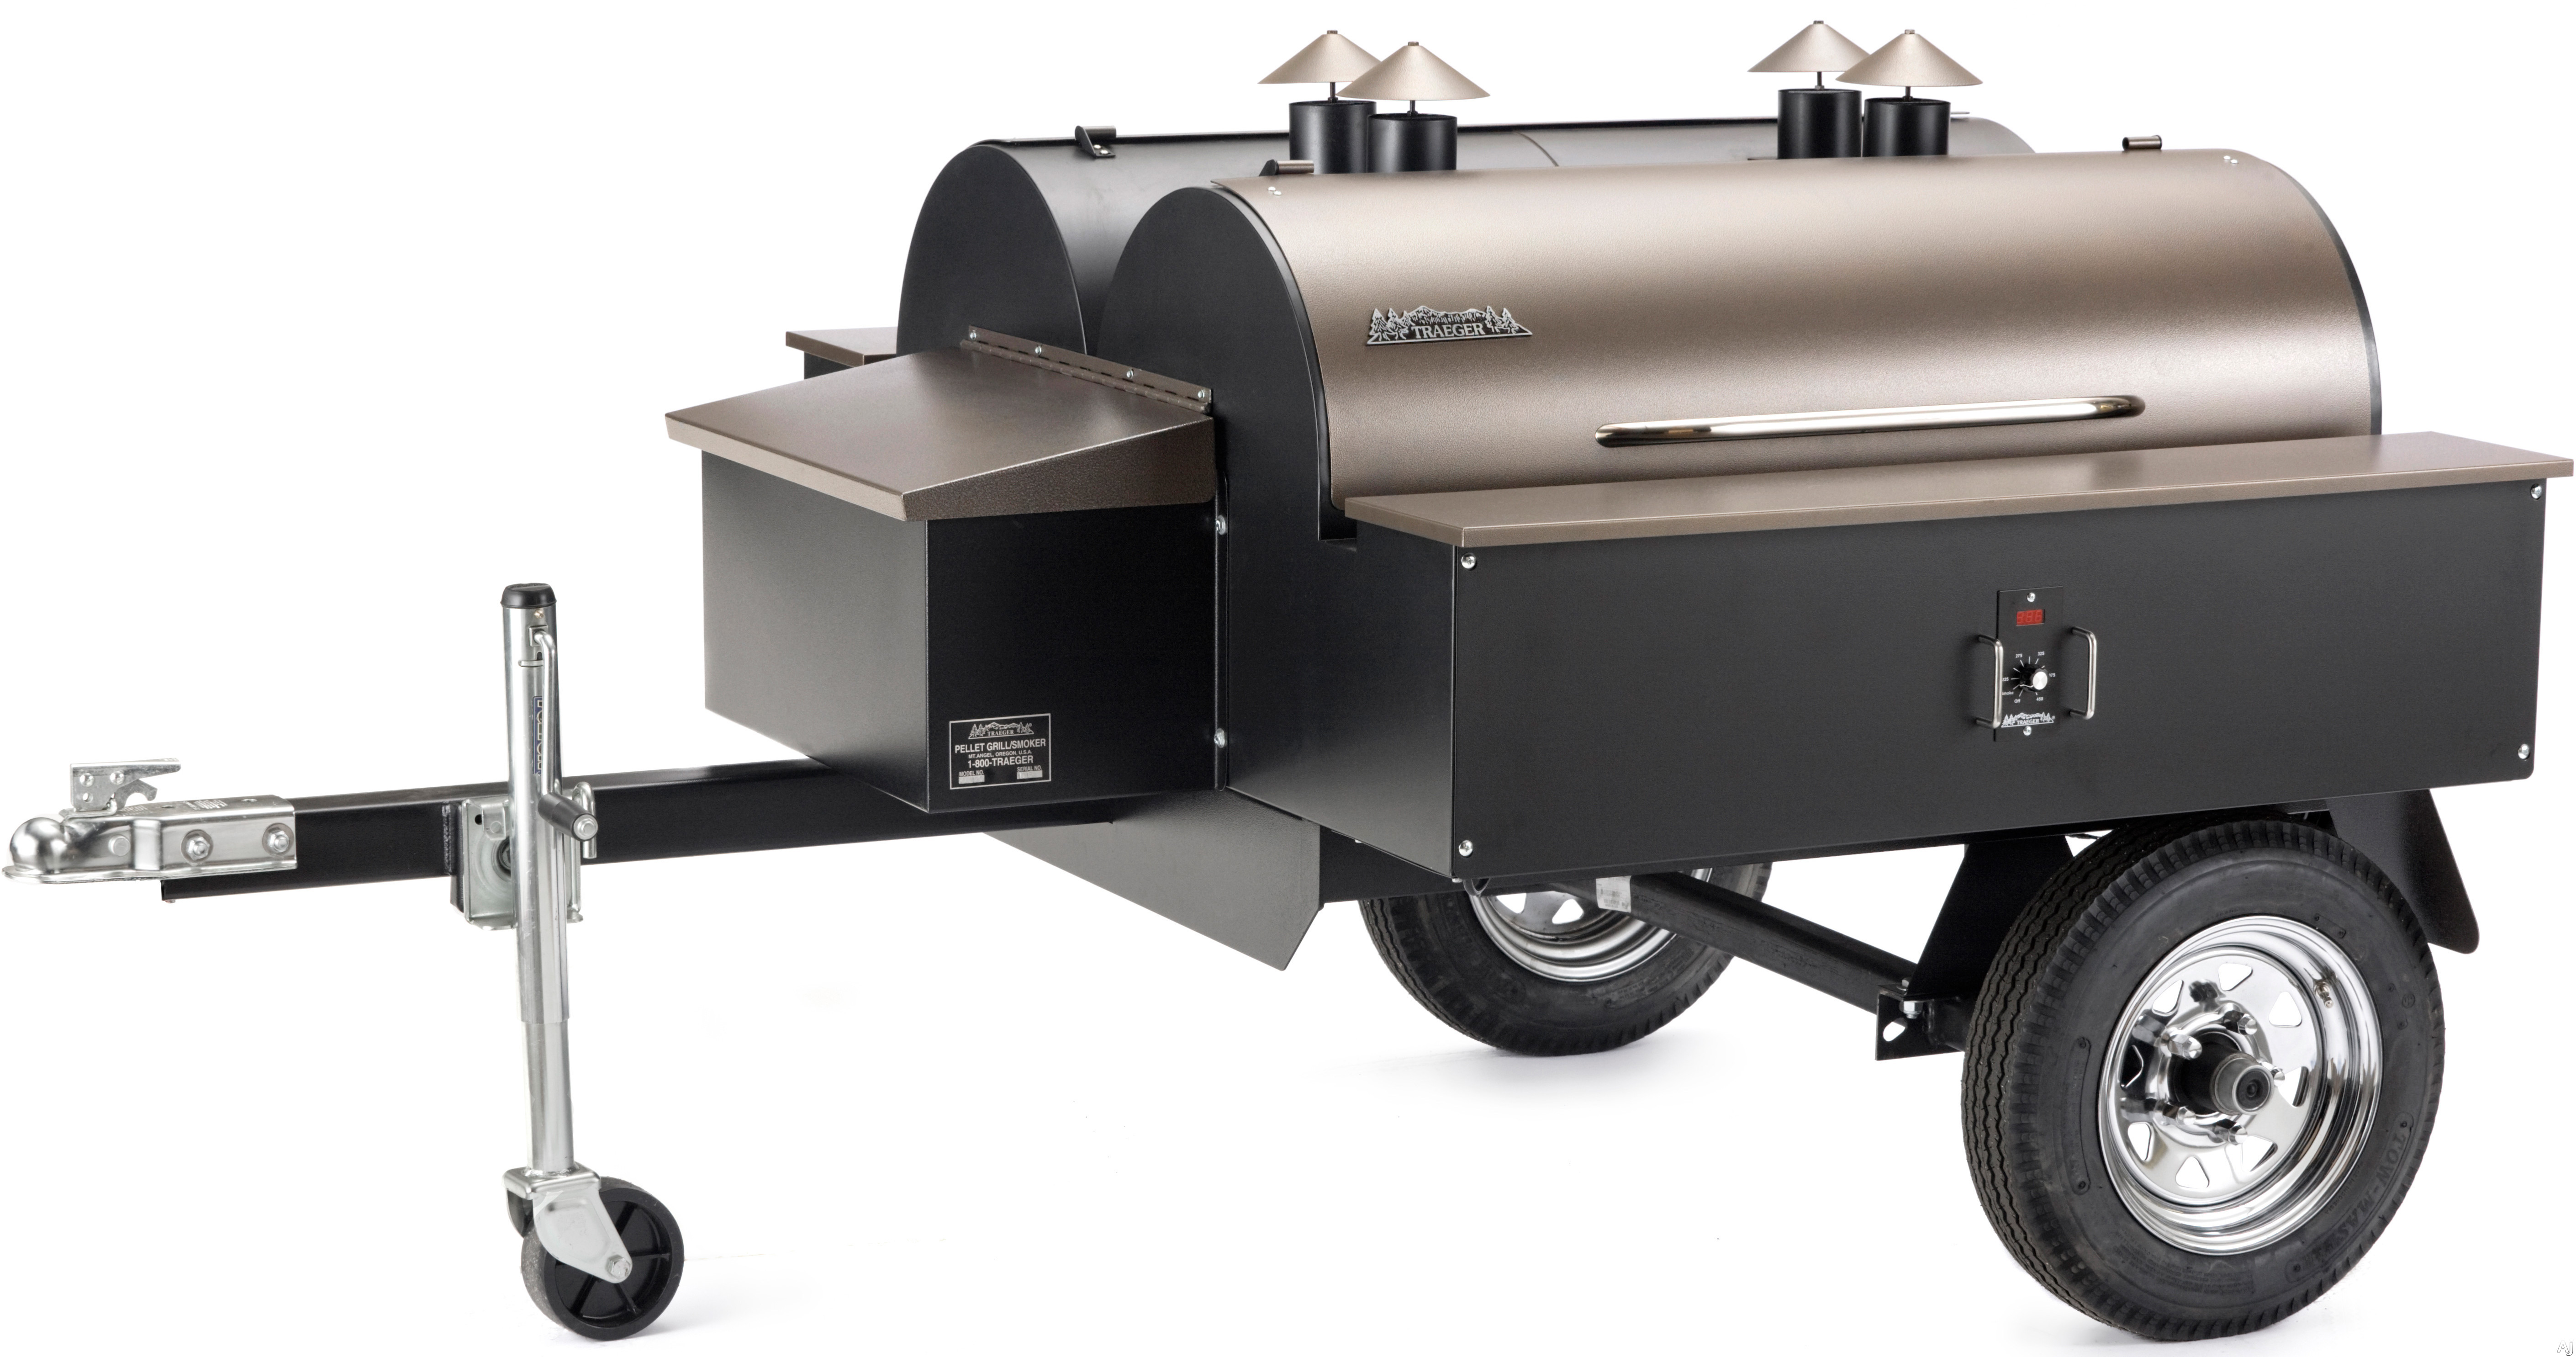 click for Full Info on this Traeger COM190 Double Commercial Trailer Wood Pellet Grill with 1 672 sq in Grilling Area  2 BBQ150 Grills  Digital Thermostat  Cargo Box and Runs Off Standard 110V Outlet